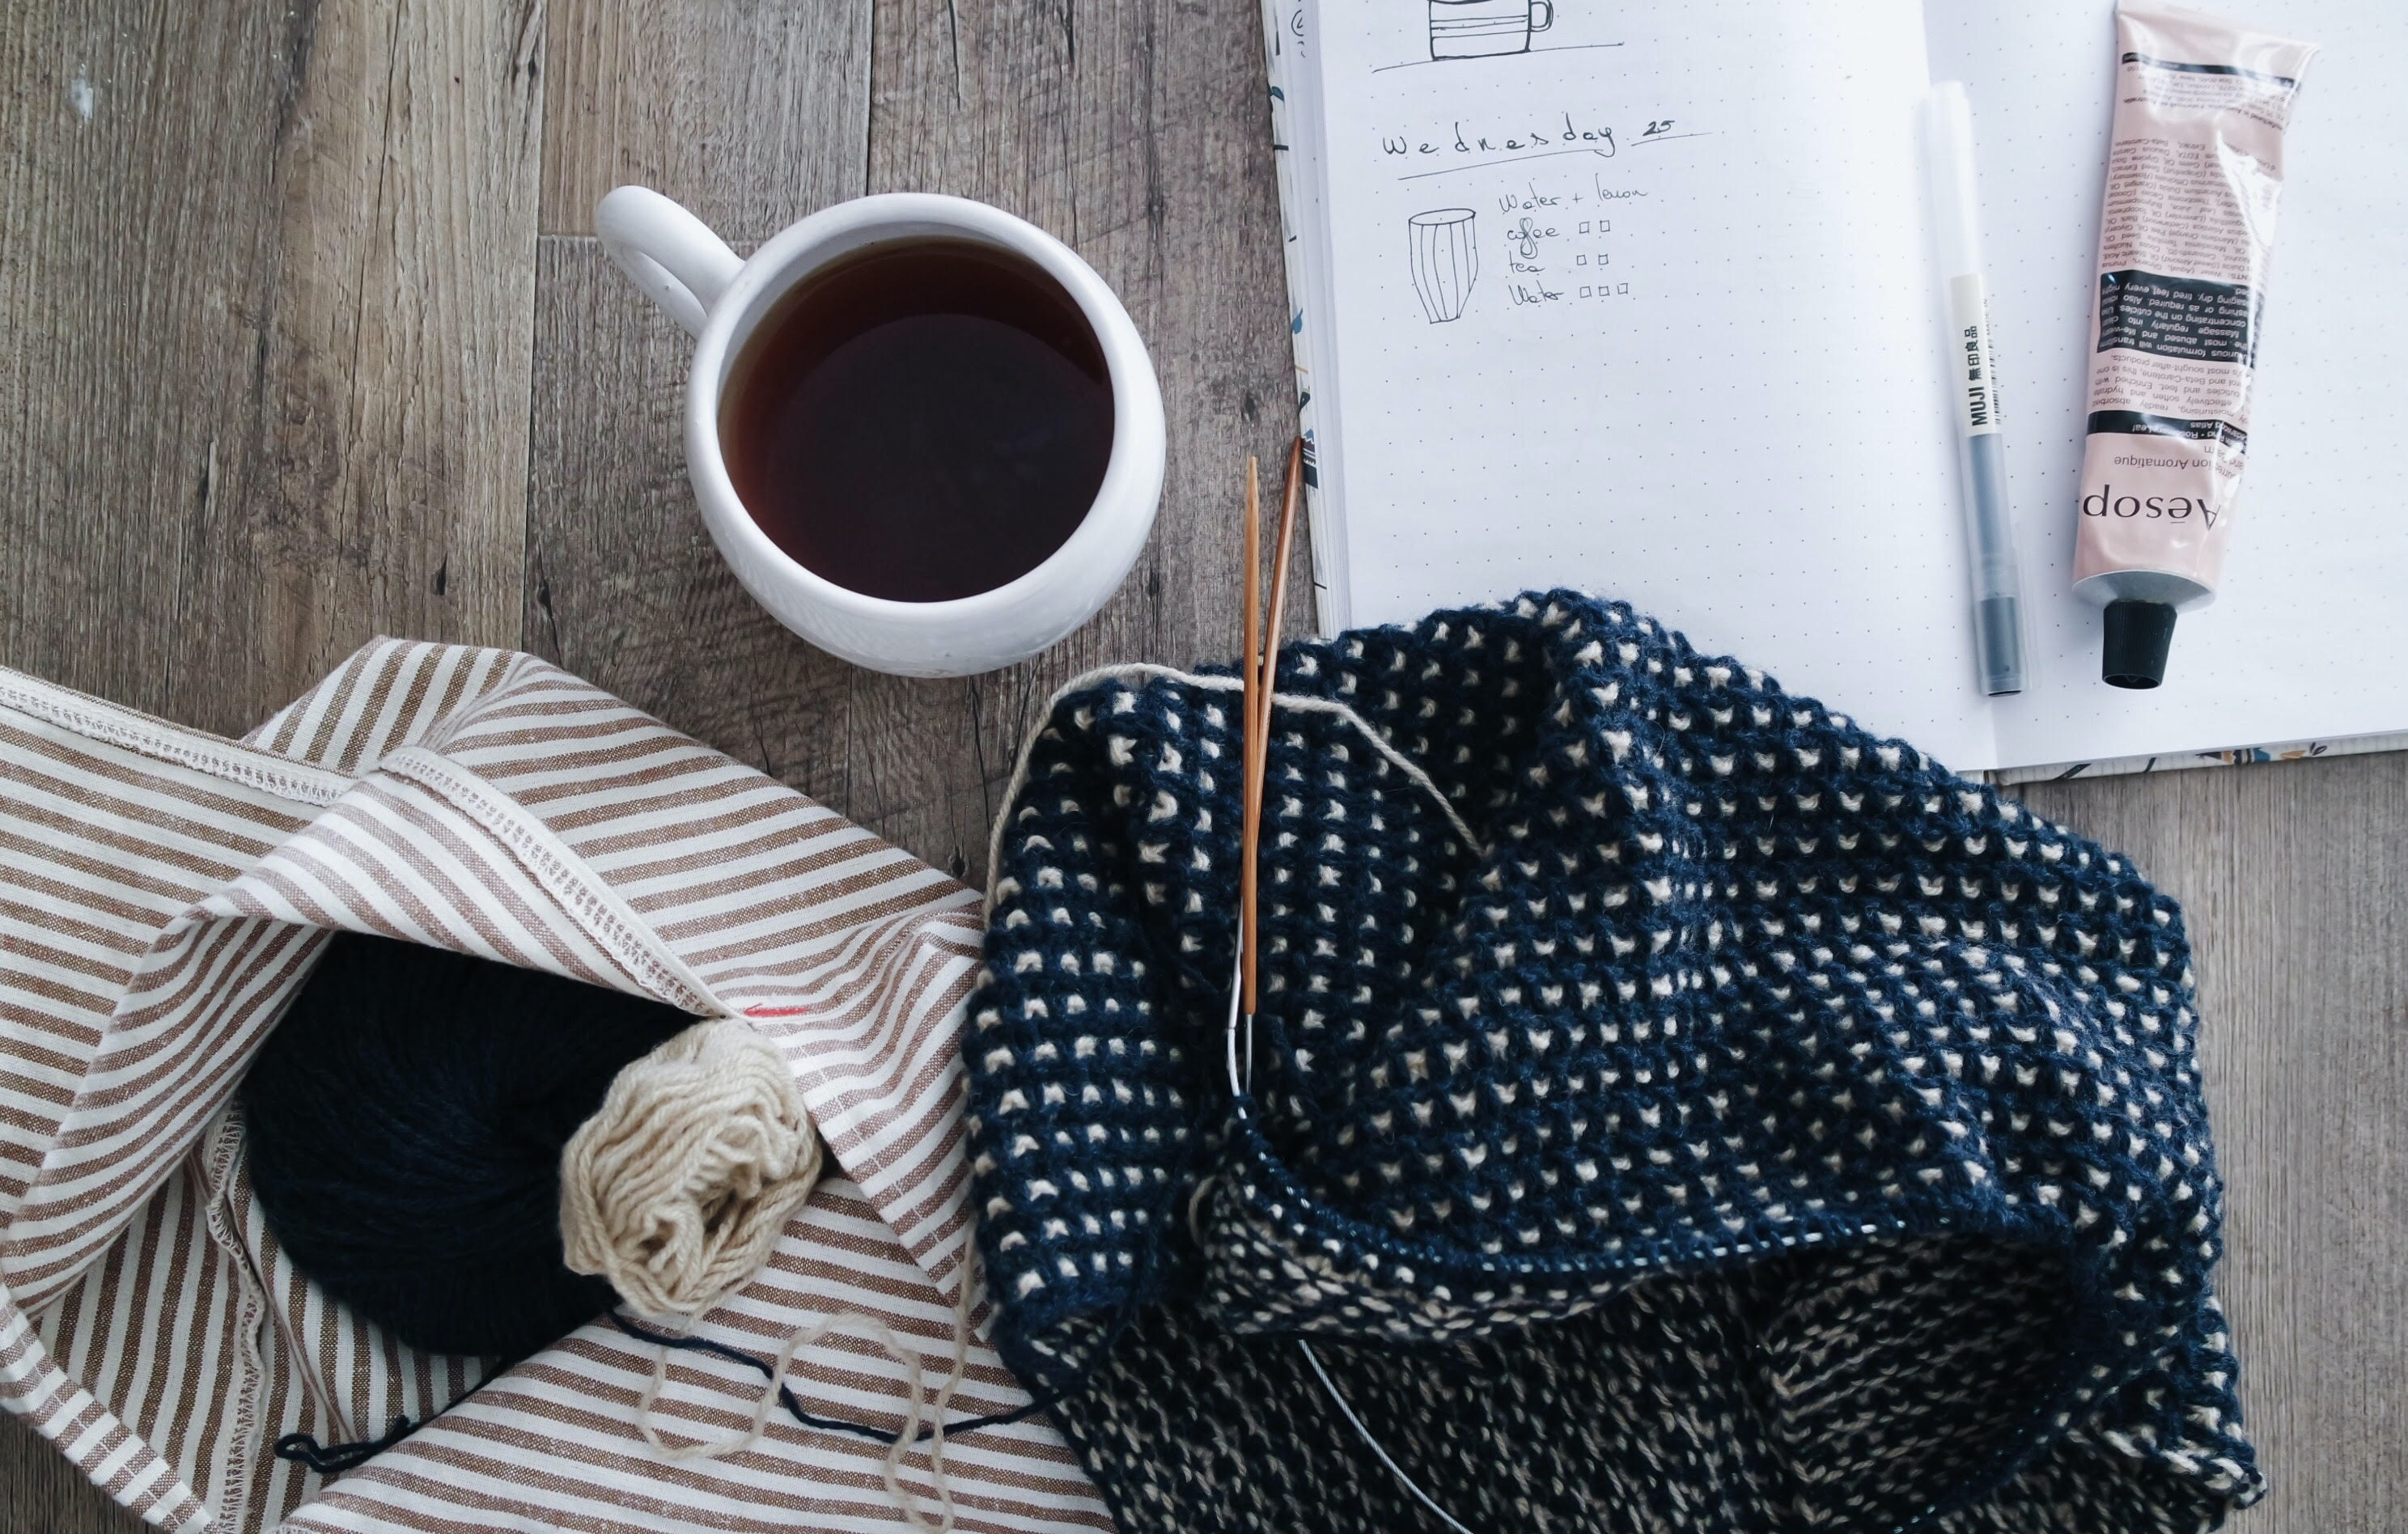 A flatlay with a cup of coffee, an open notebook and a knitting kit